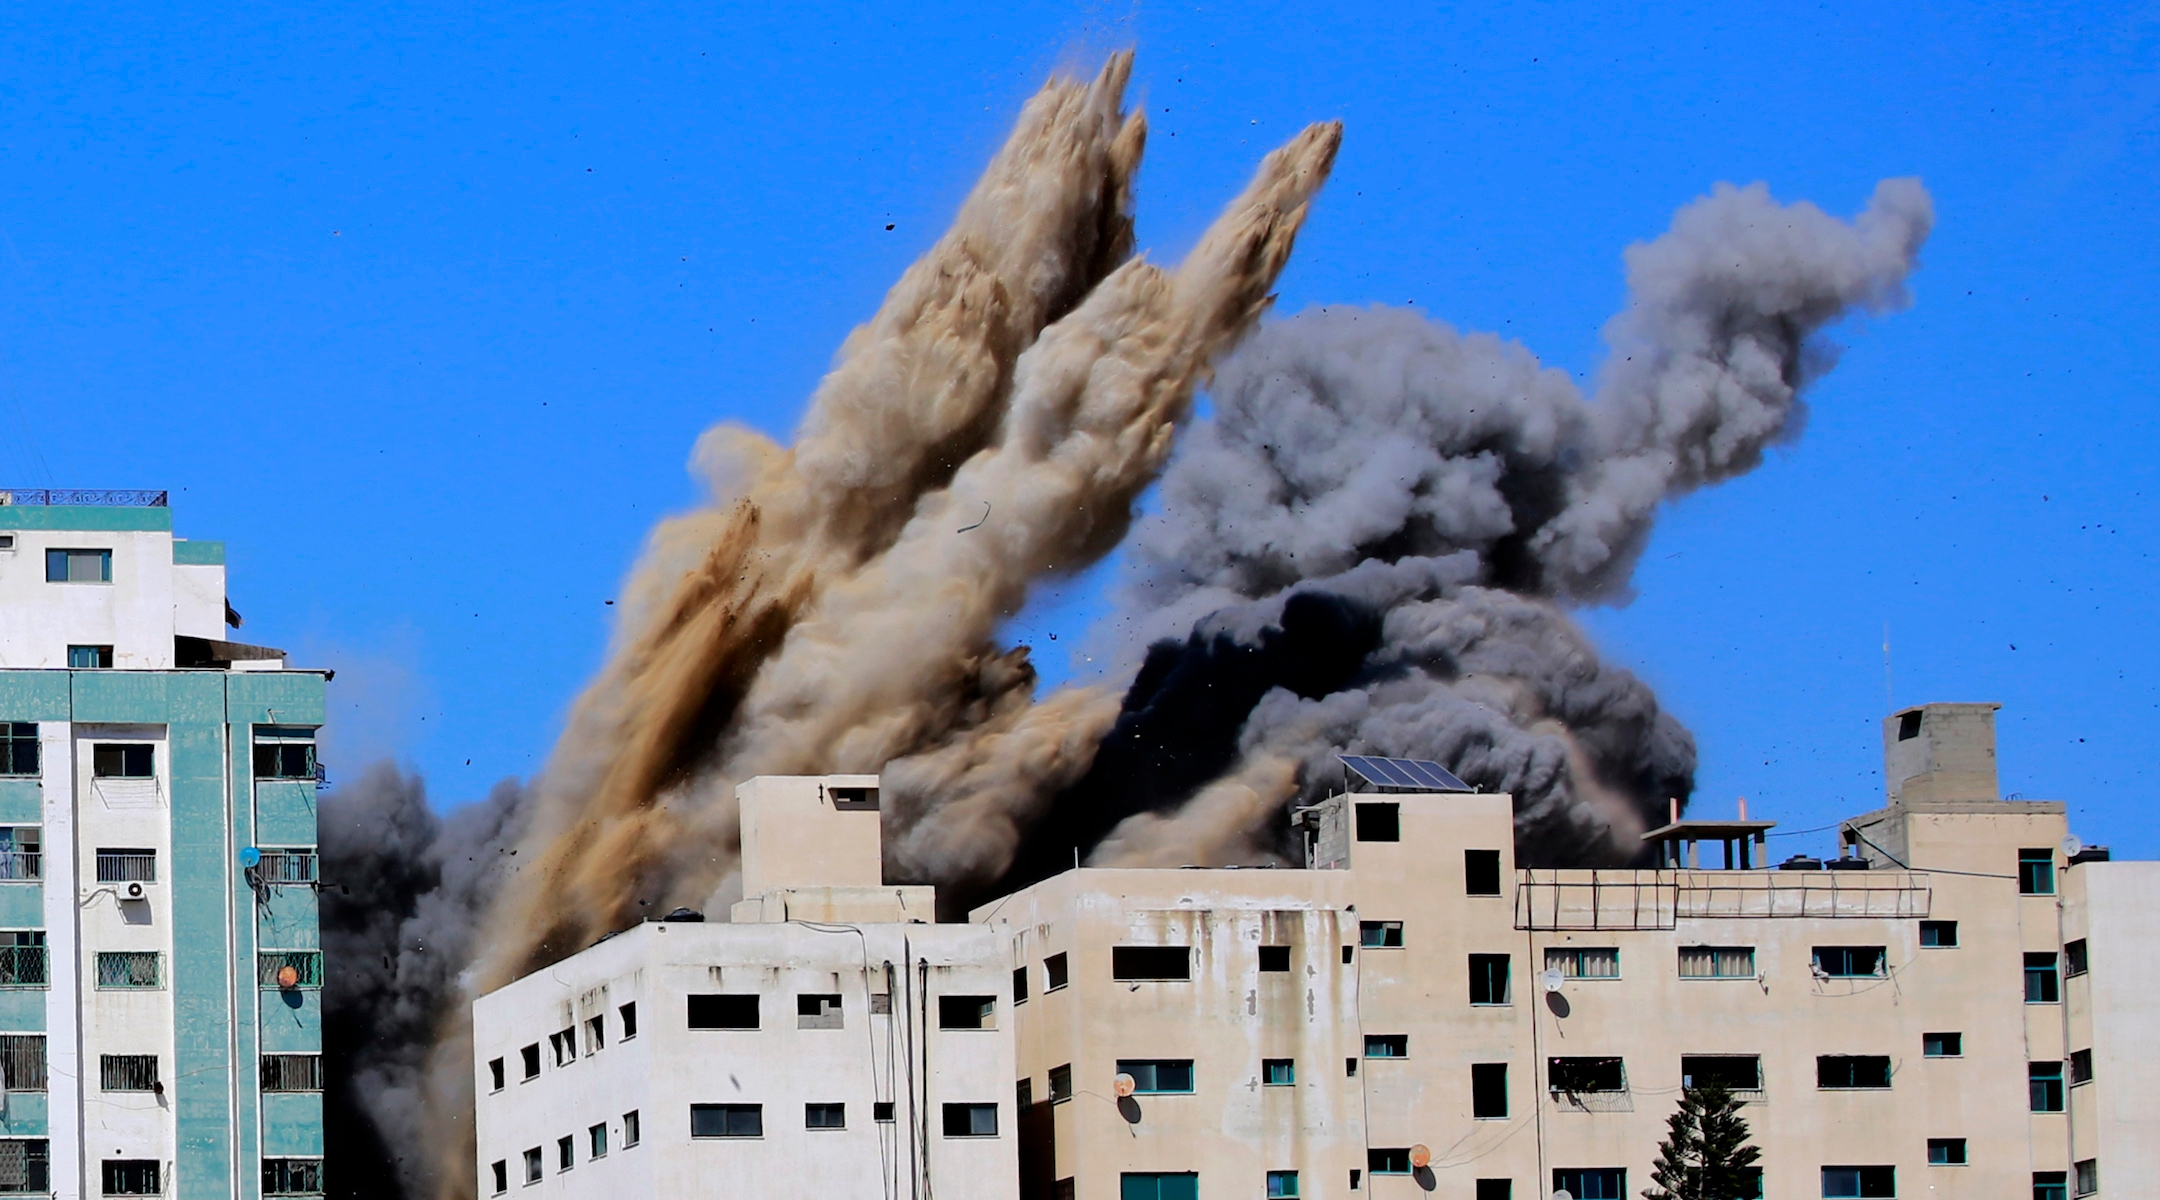 In deadliest day in current fighting, Israeli barrage kills at least 42 in Gaza as...